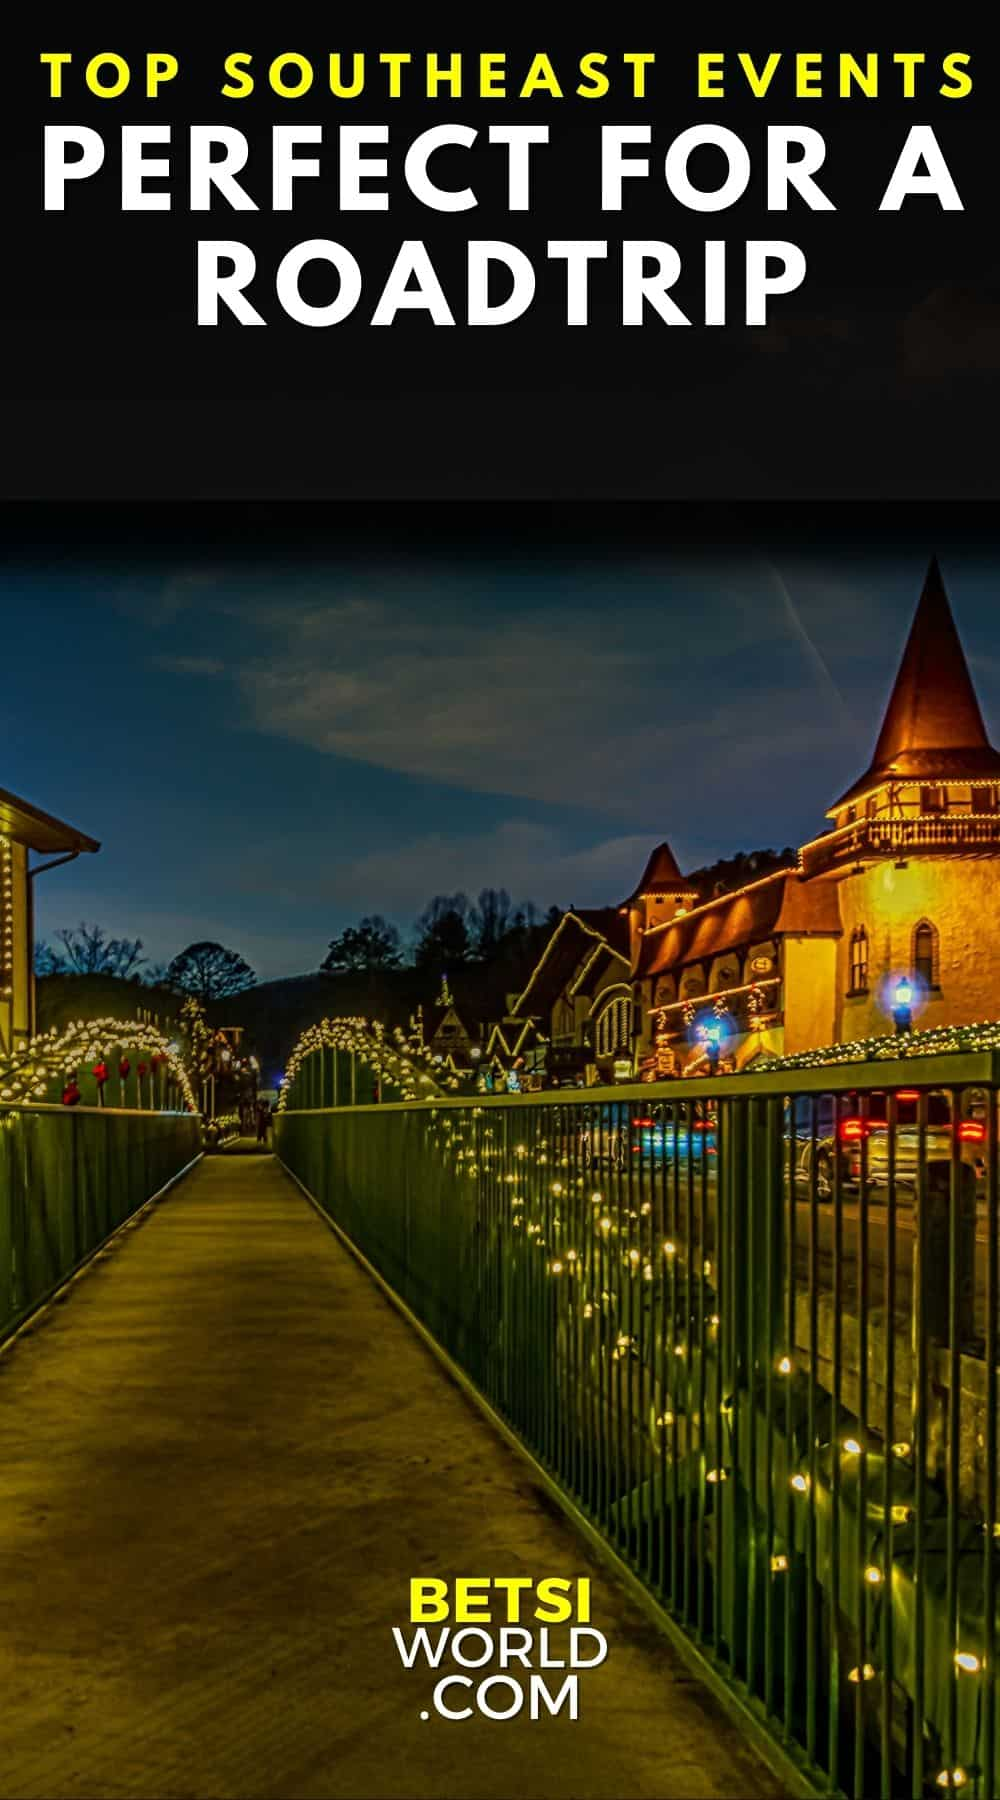 Christmas lights on bridge in the Southeast. Top Southeast Events Perfect For A Roadtrip